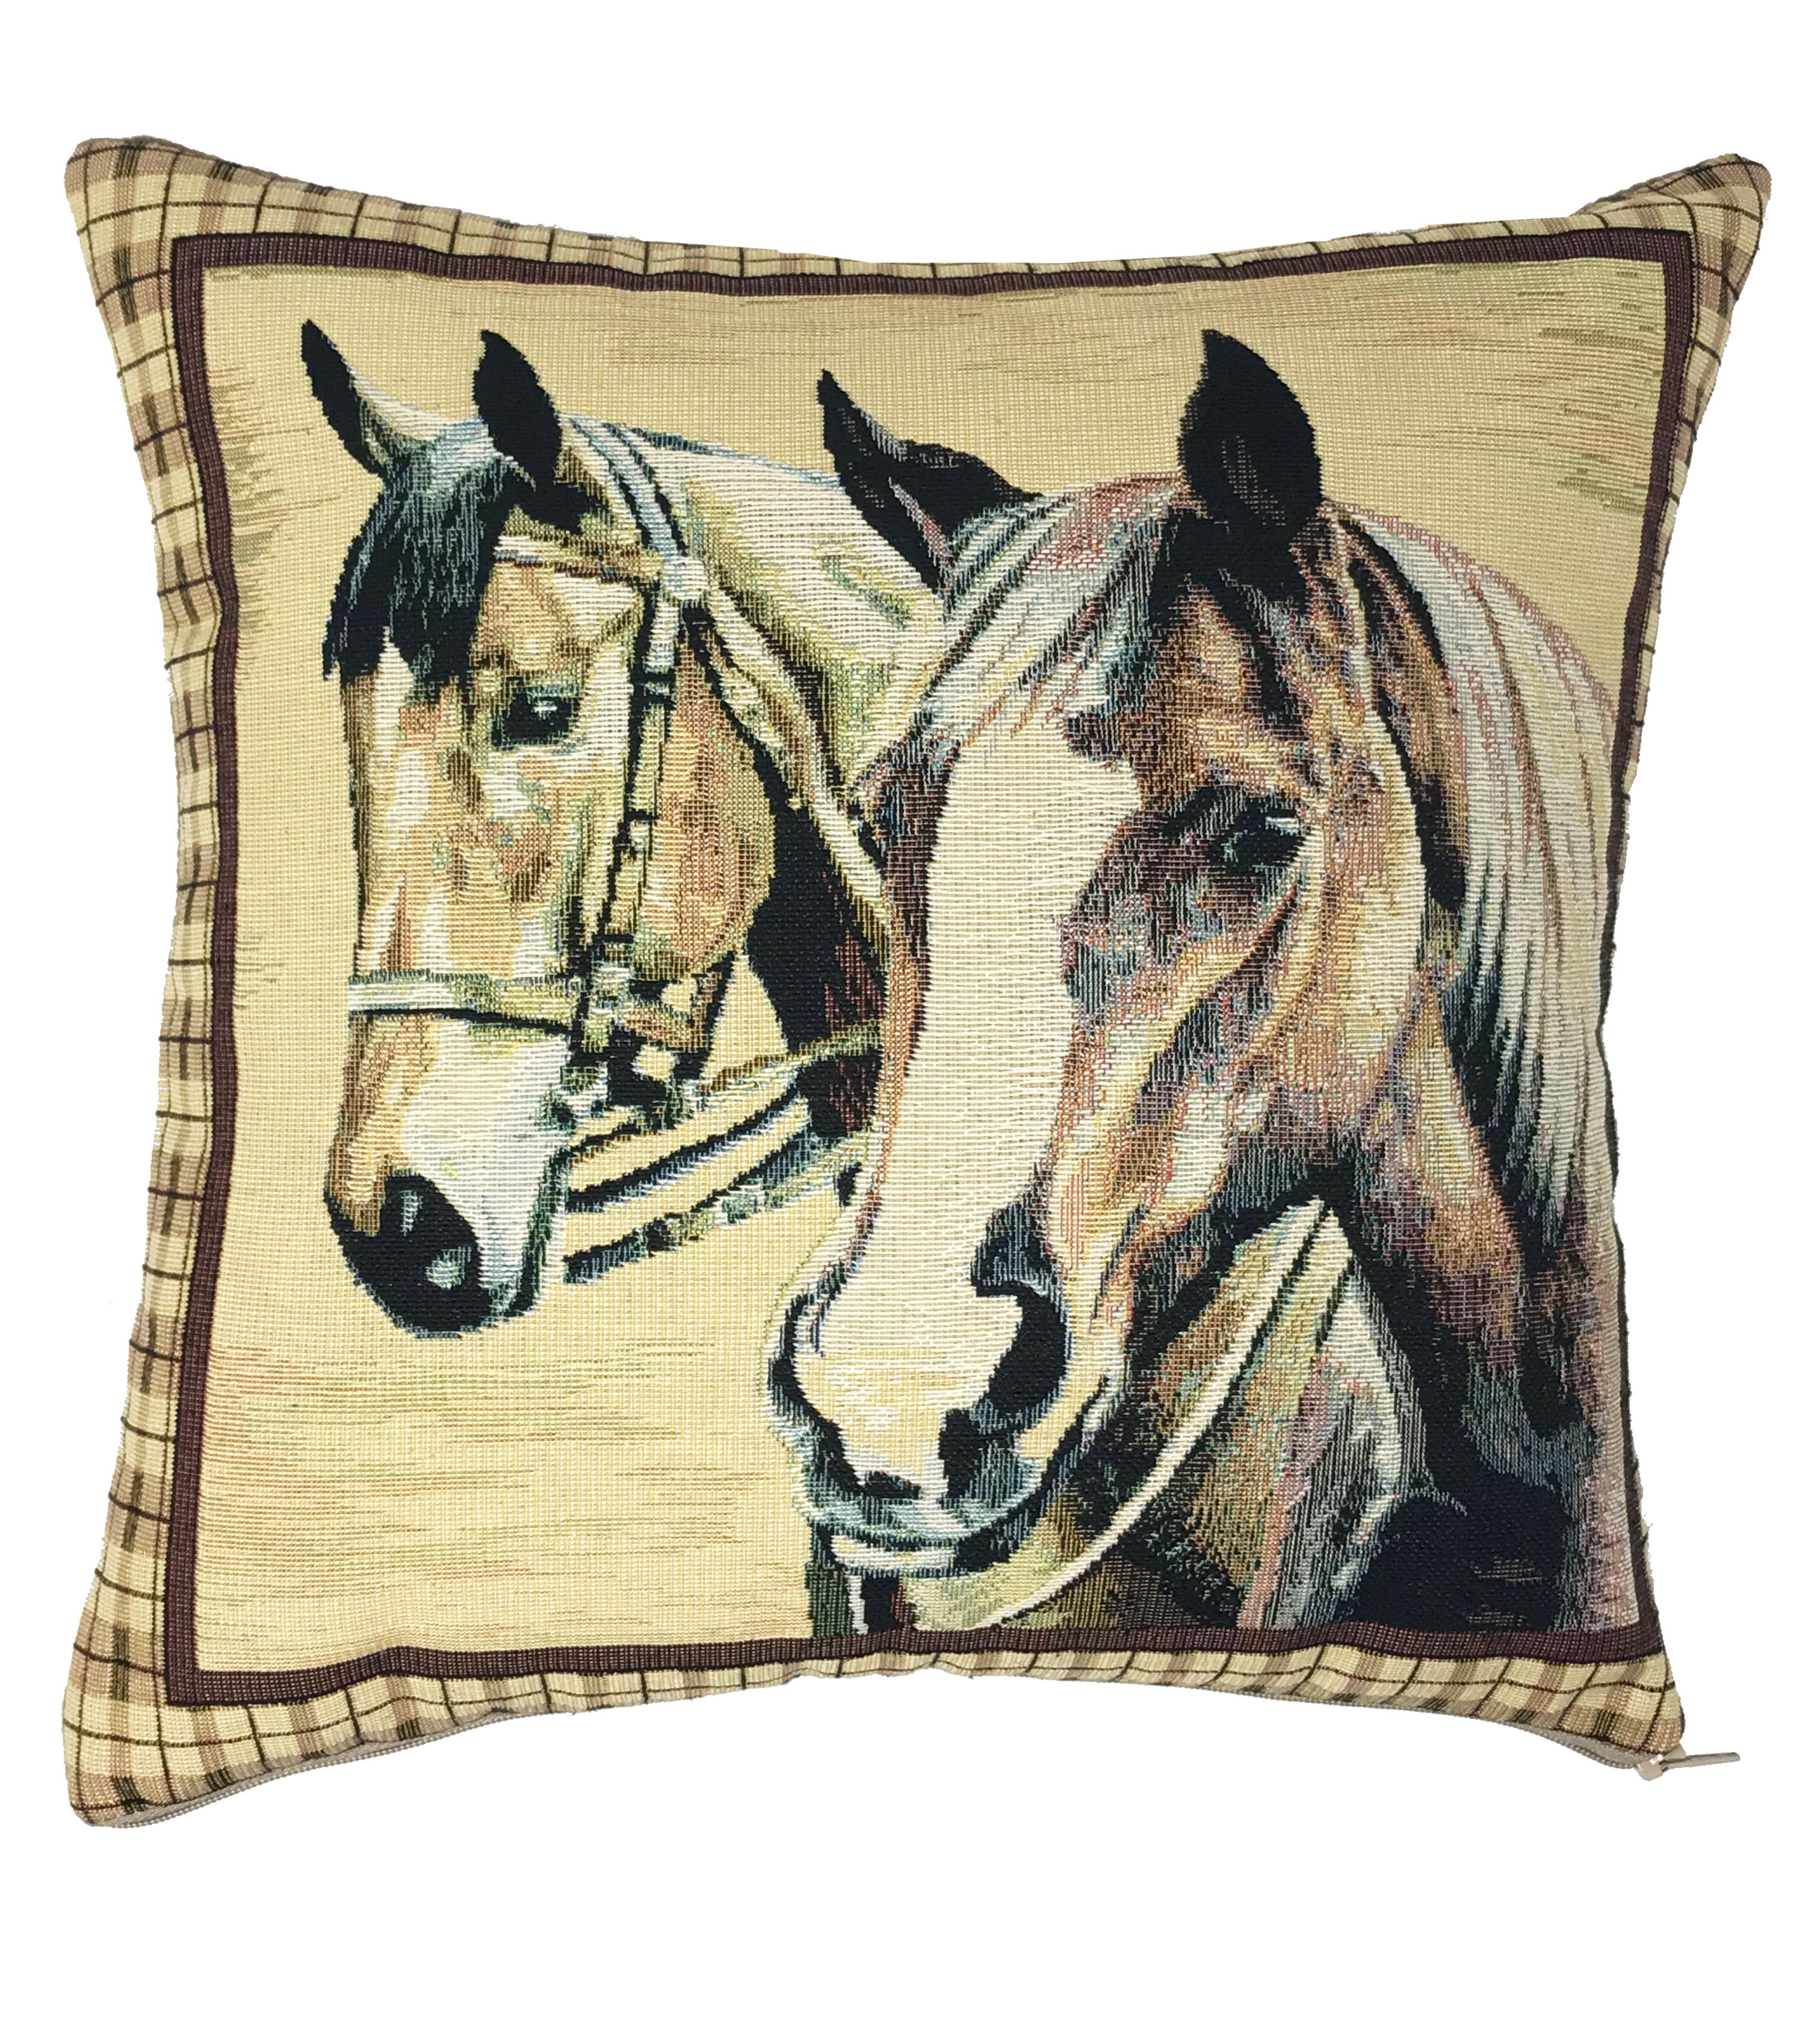 Embroidered Belsay Horse Square 32cm x32cm Cushion Cover Only